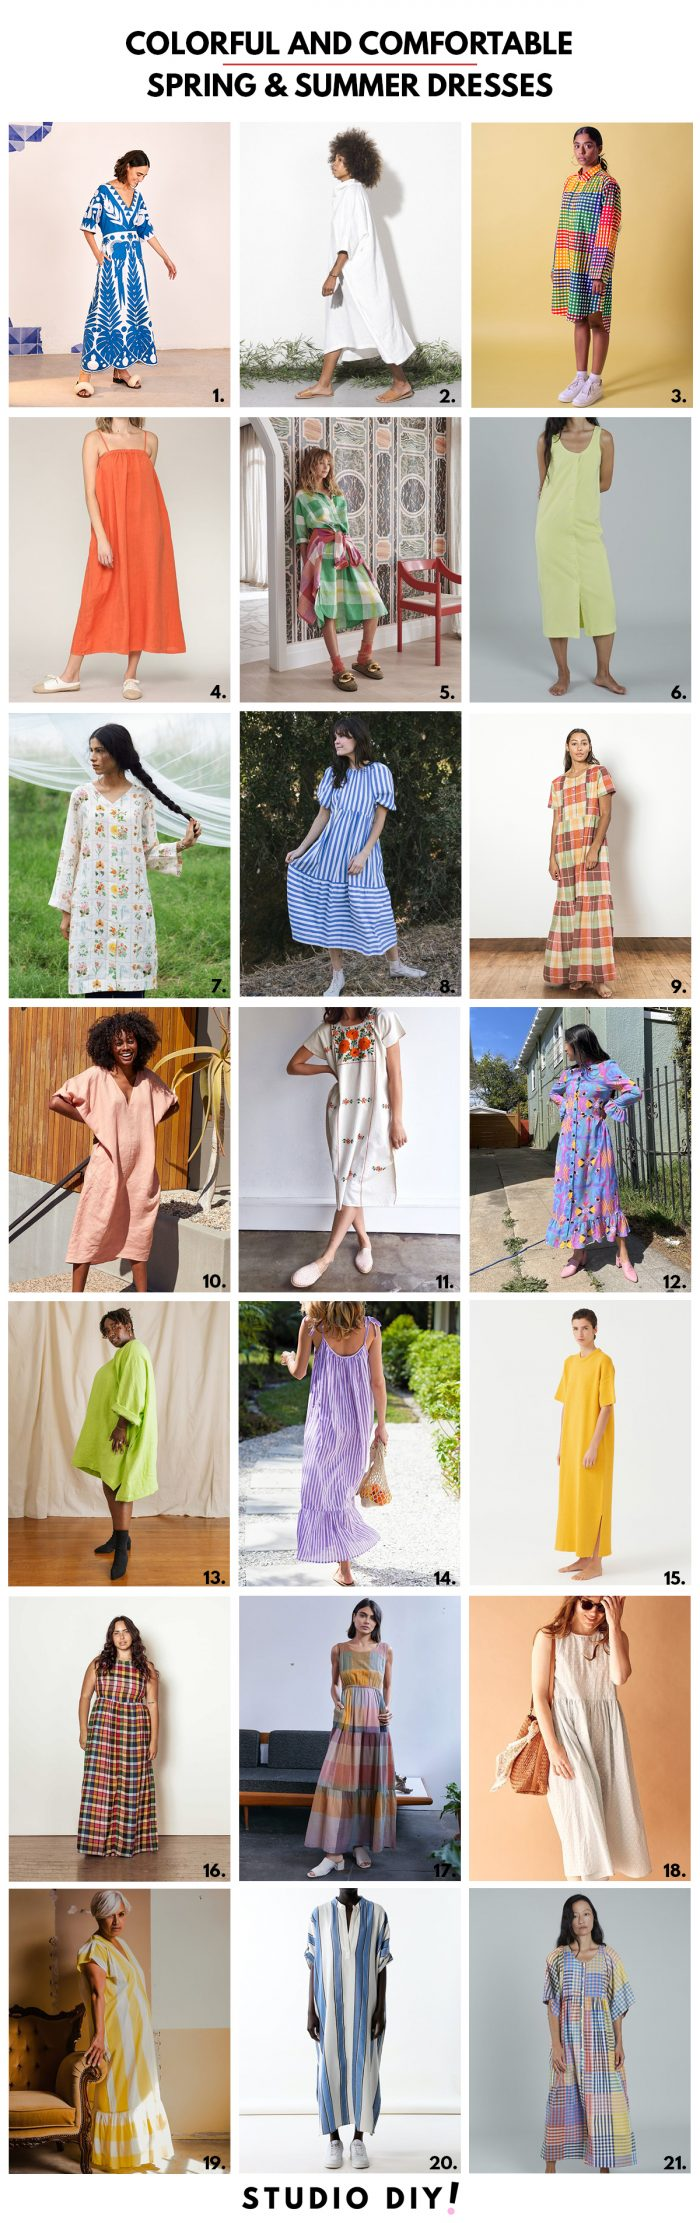 Colorful & Comfortable Spring and Summer Dresses